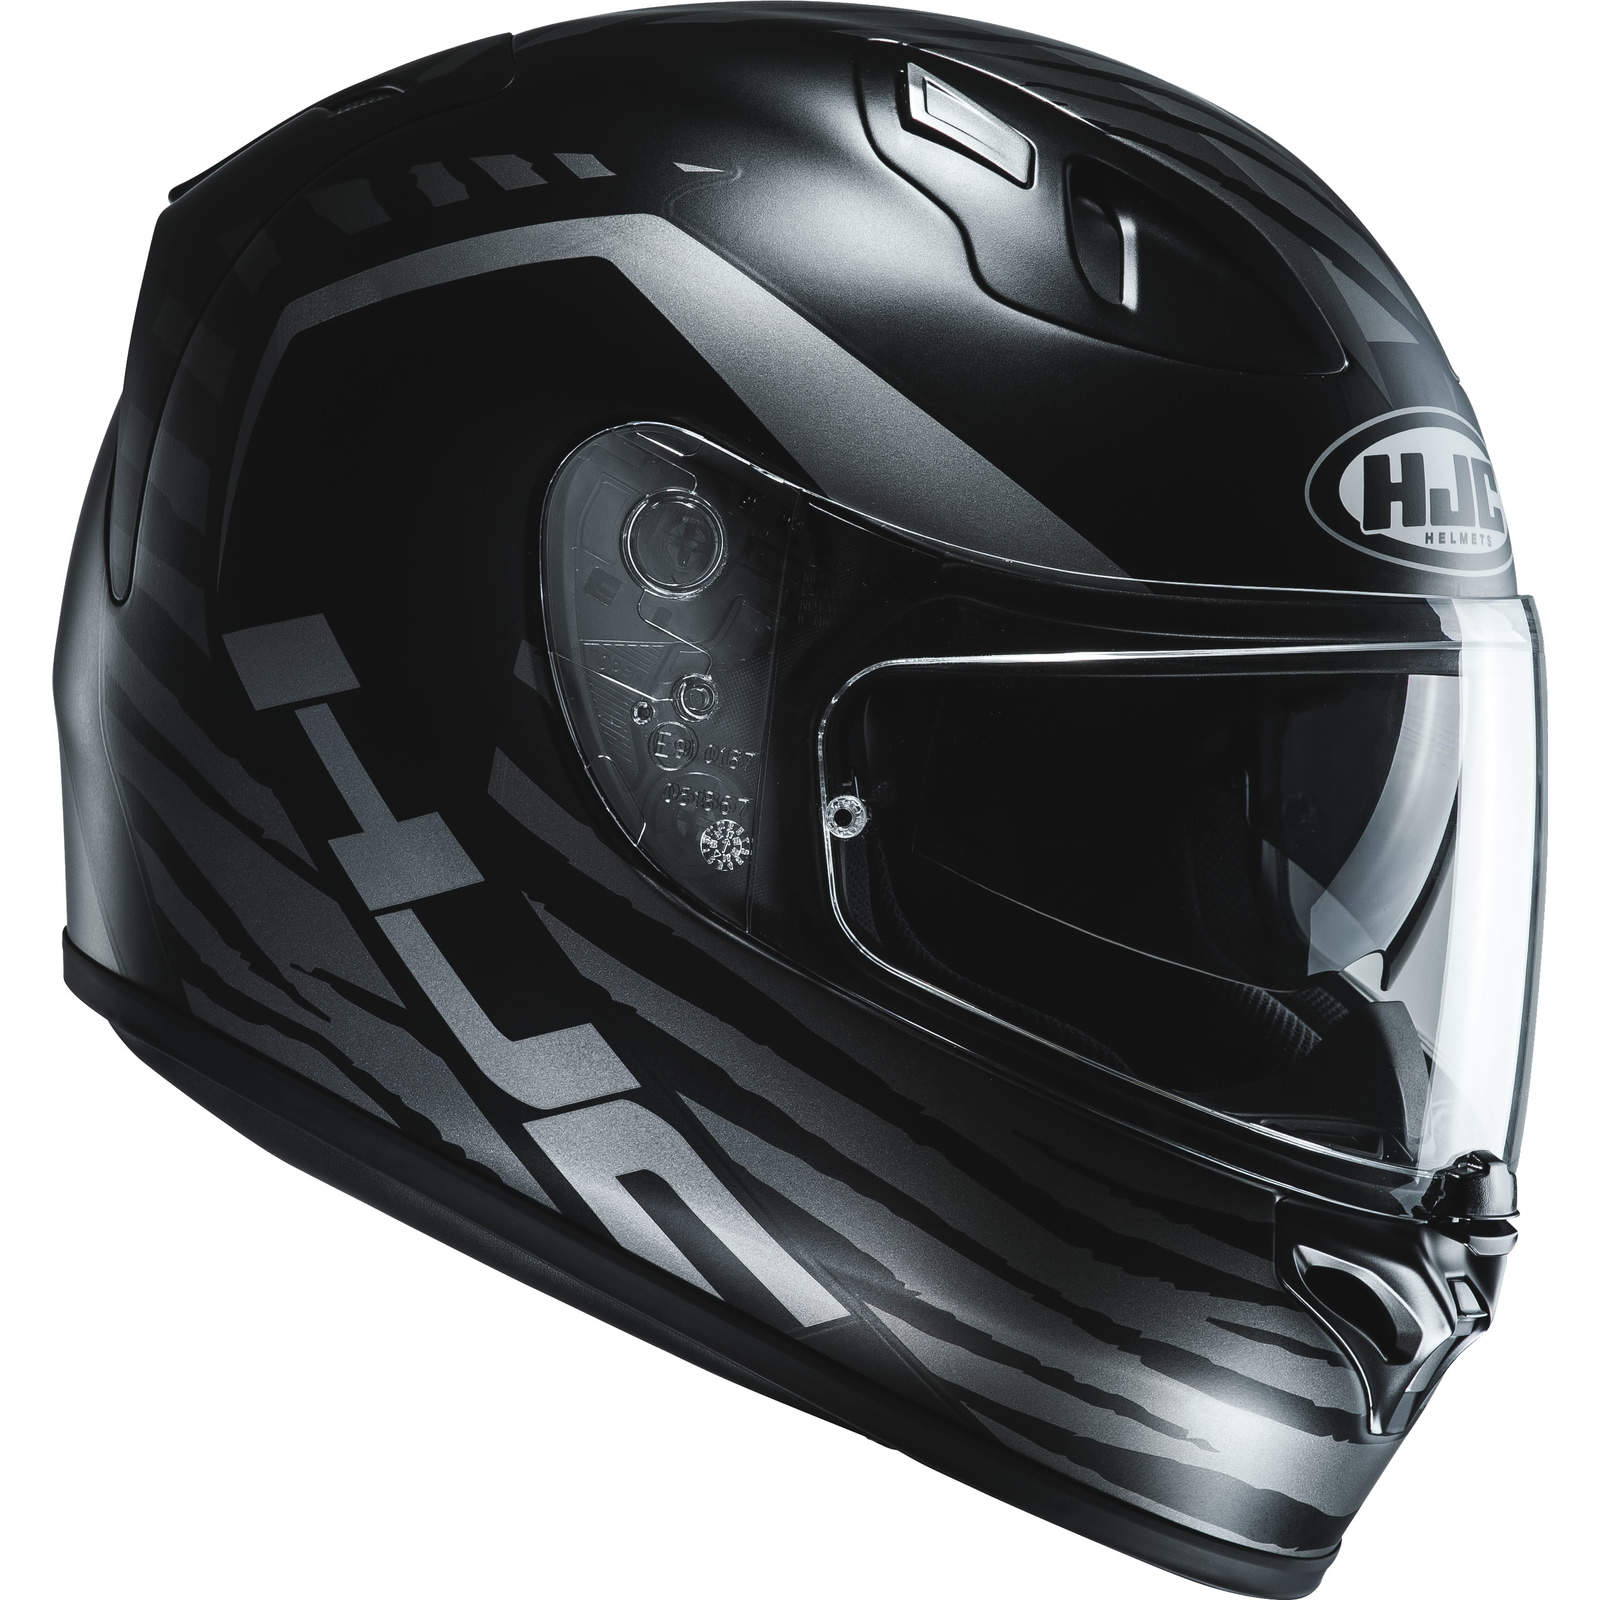 hjc fg st tian motorcycle helmet visor motorbike acu full face racing sharp ebay. Black Bedroom Furniture Sets. Home Design Ideas